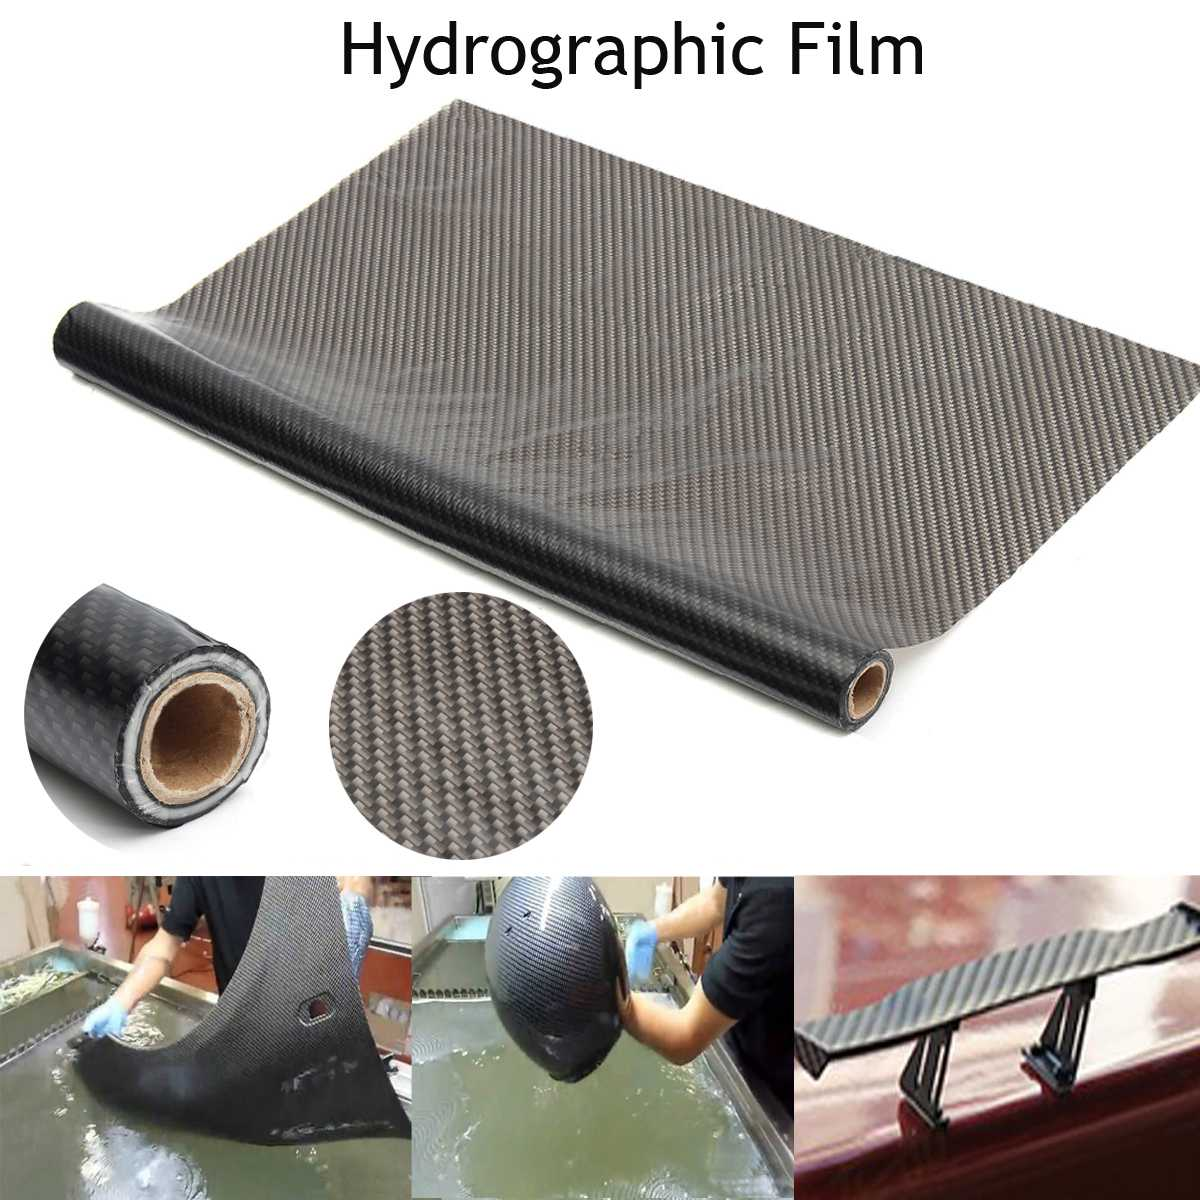 0.5x10m Hydrodipping Film Carbon Fiber Water Transfer Hydrodipping DIP Print Film